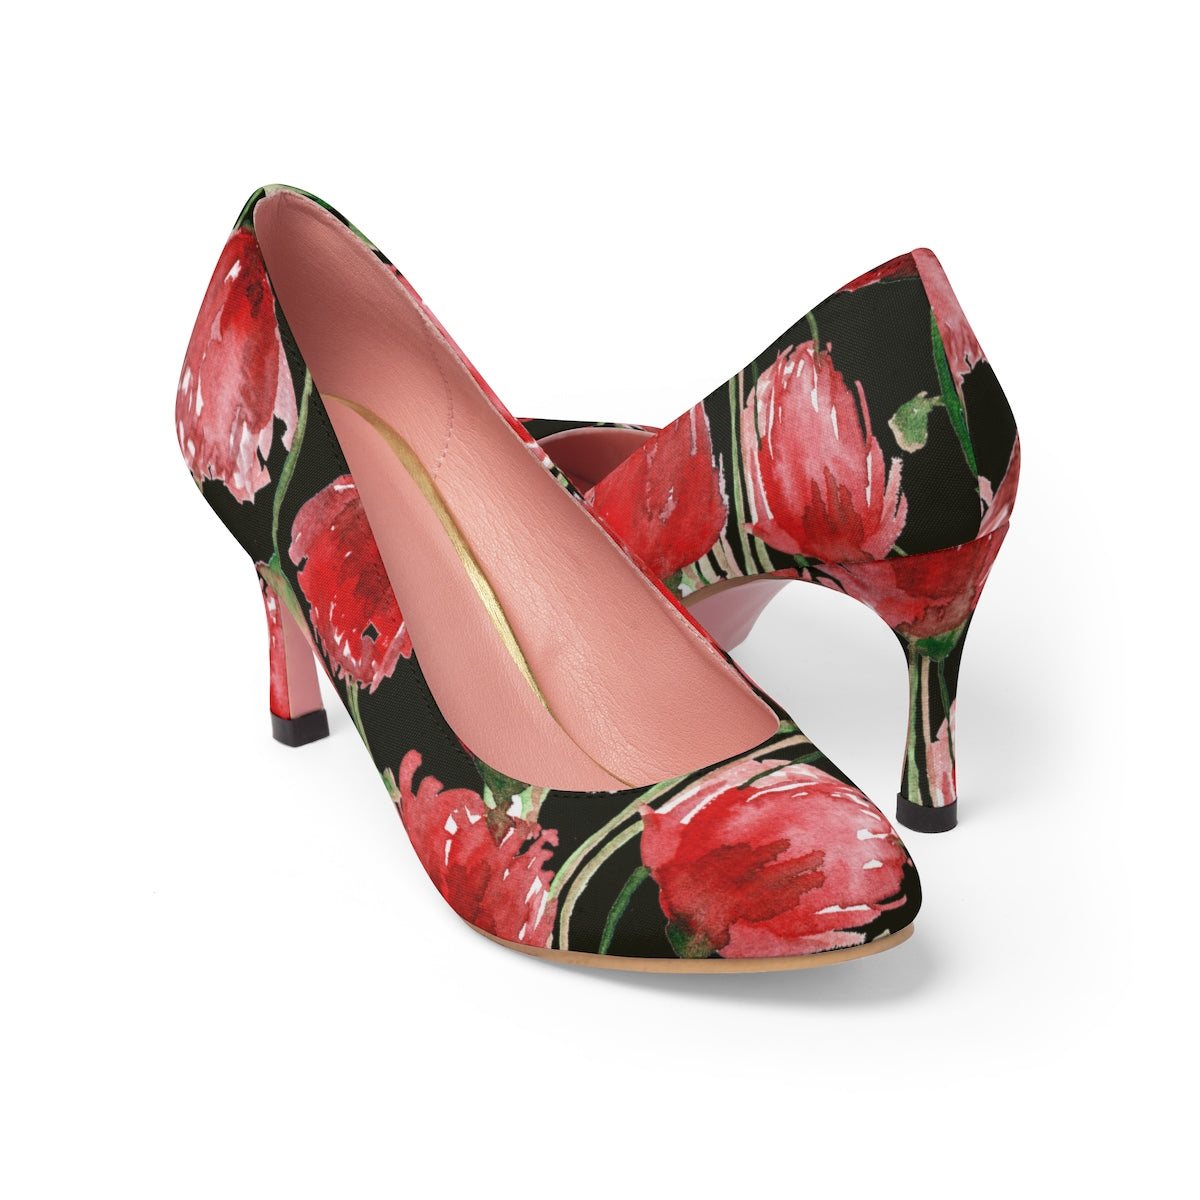 "Bright Red Poppy Flower Floral Print Designer Women's 3"" High Heels (US Size 5-11)-3 inch Heels-US 7-Heidi Kimura Art LLC"